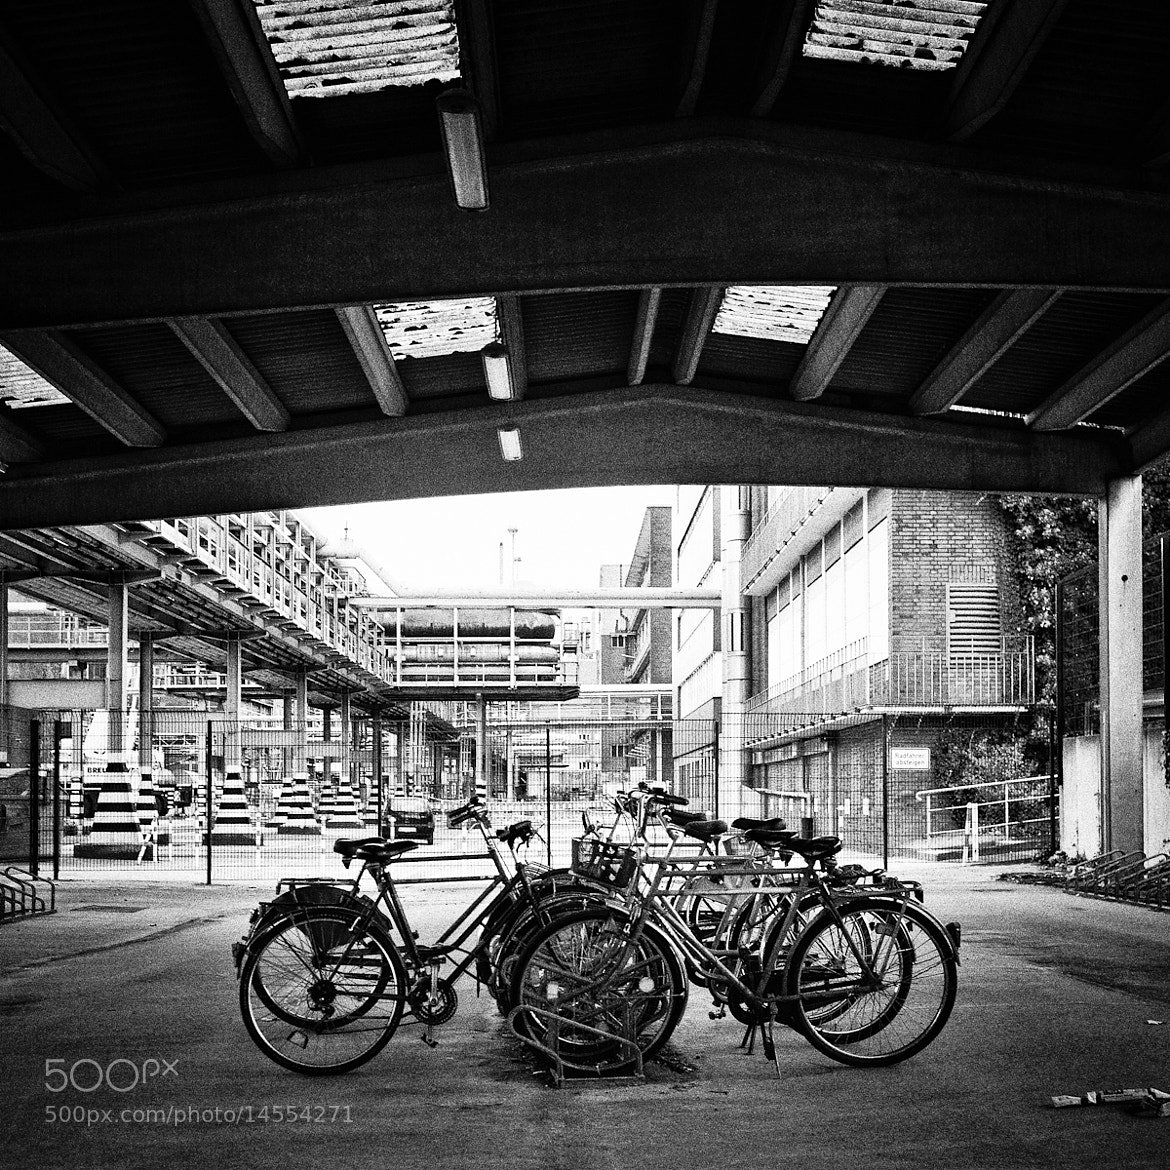 Photograph parking garage by Andrea Schuh on 500px